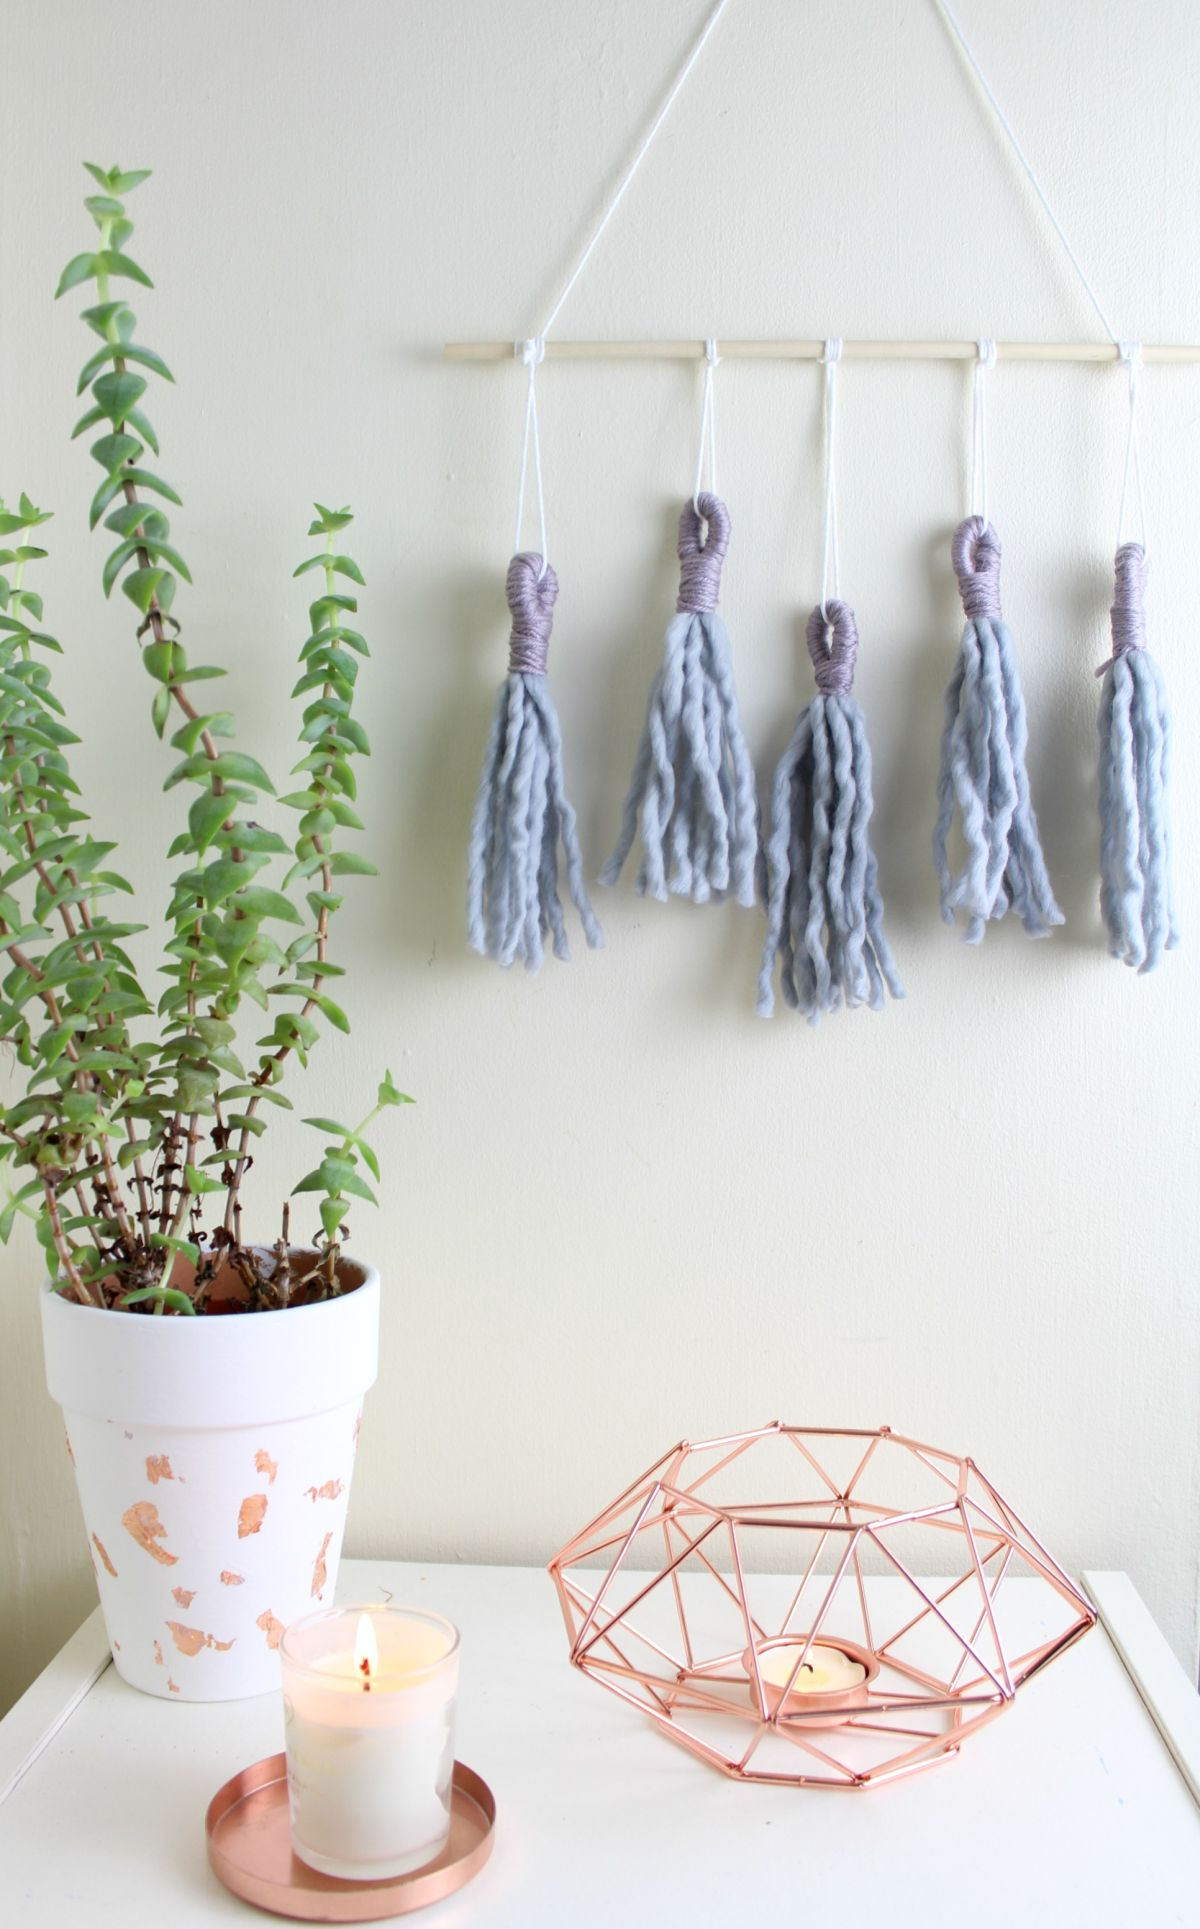 Wall-hanging decoration with tassels